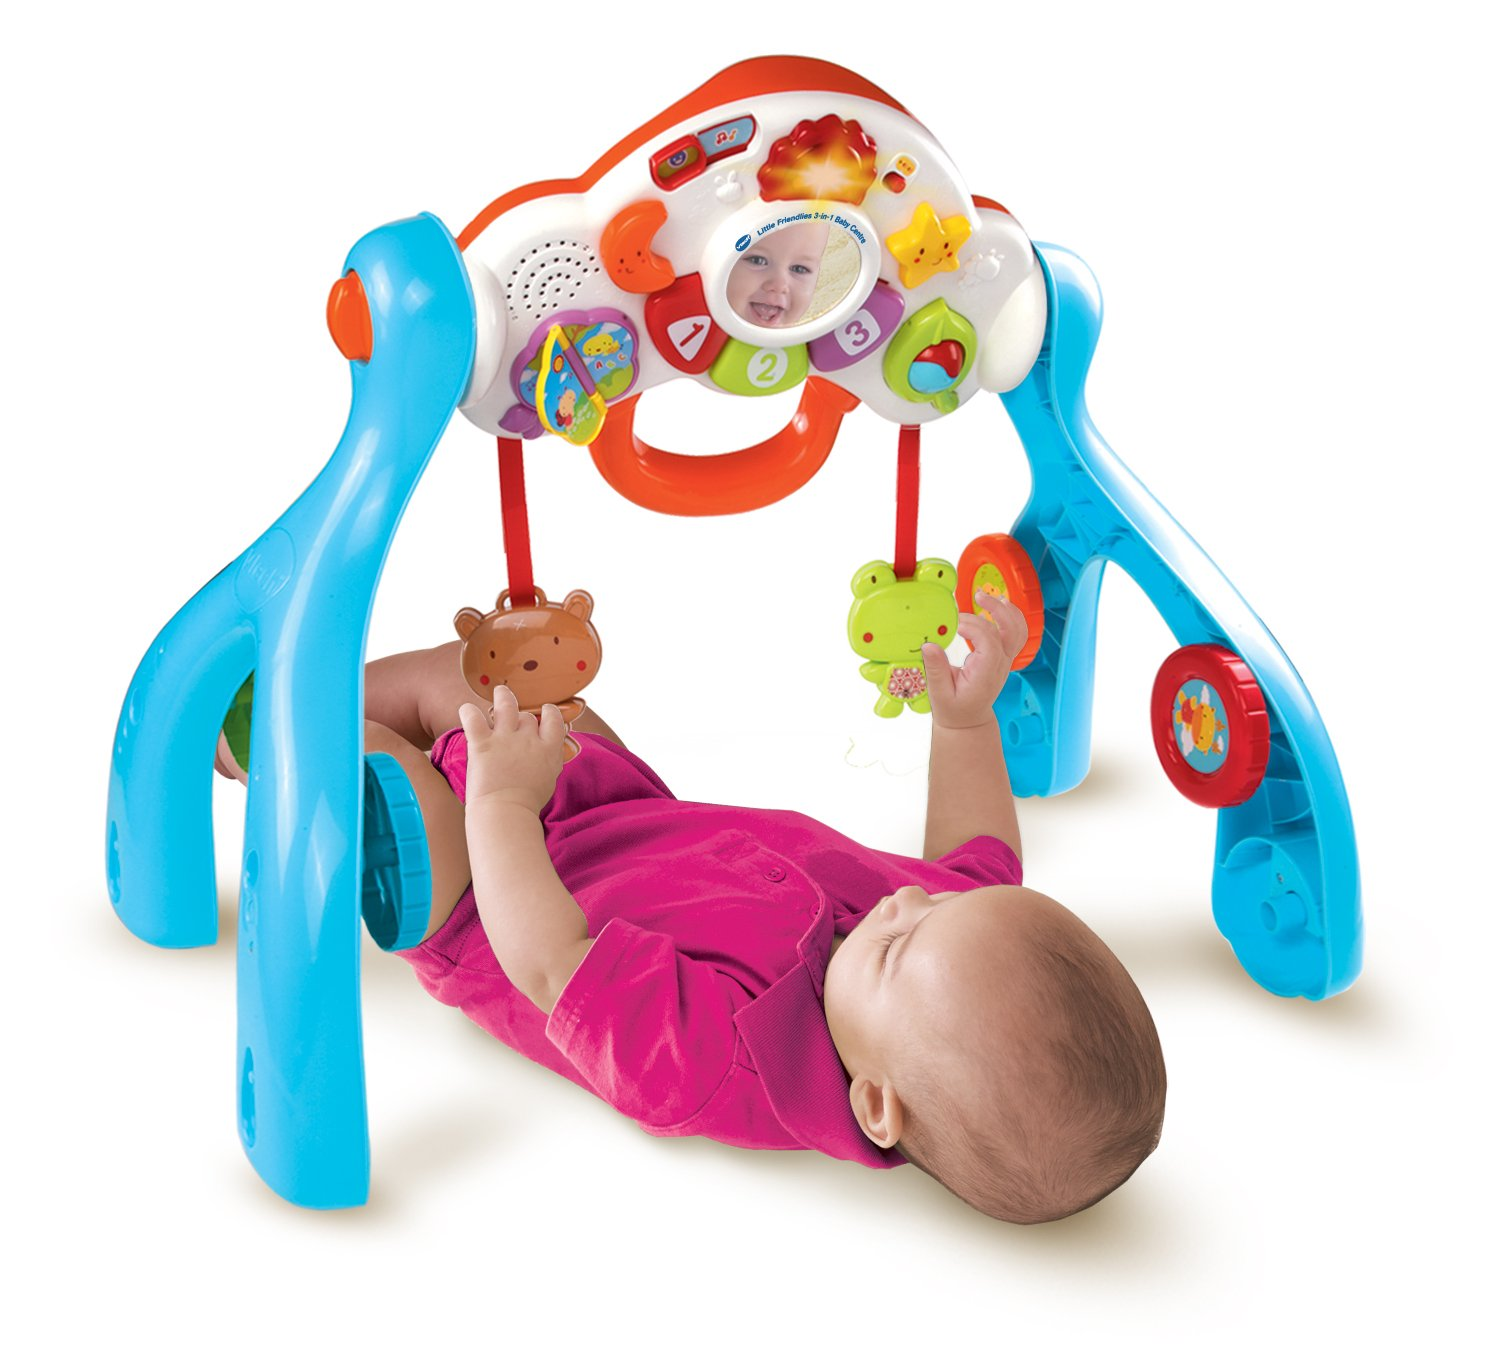 Vtech Little Friendlies 3 in 1 Activity Centre Amazon Toys